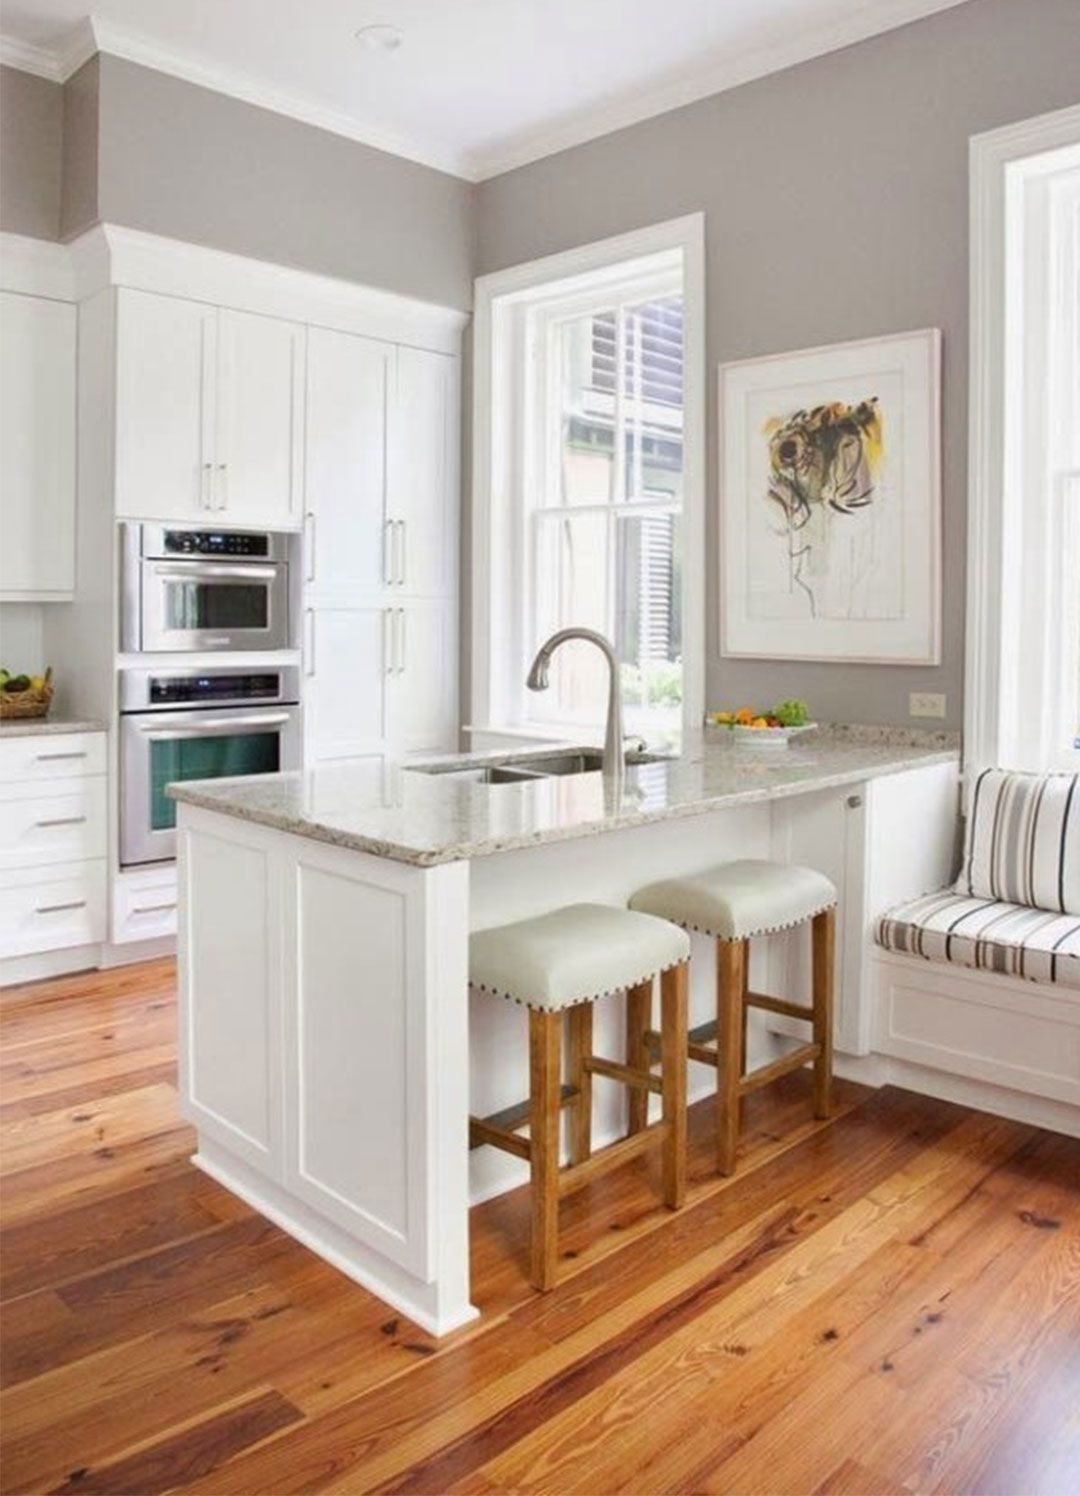 awesome steps how to remodel your kitchen can make you amazed